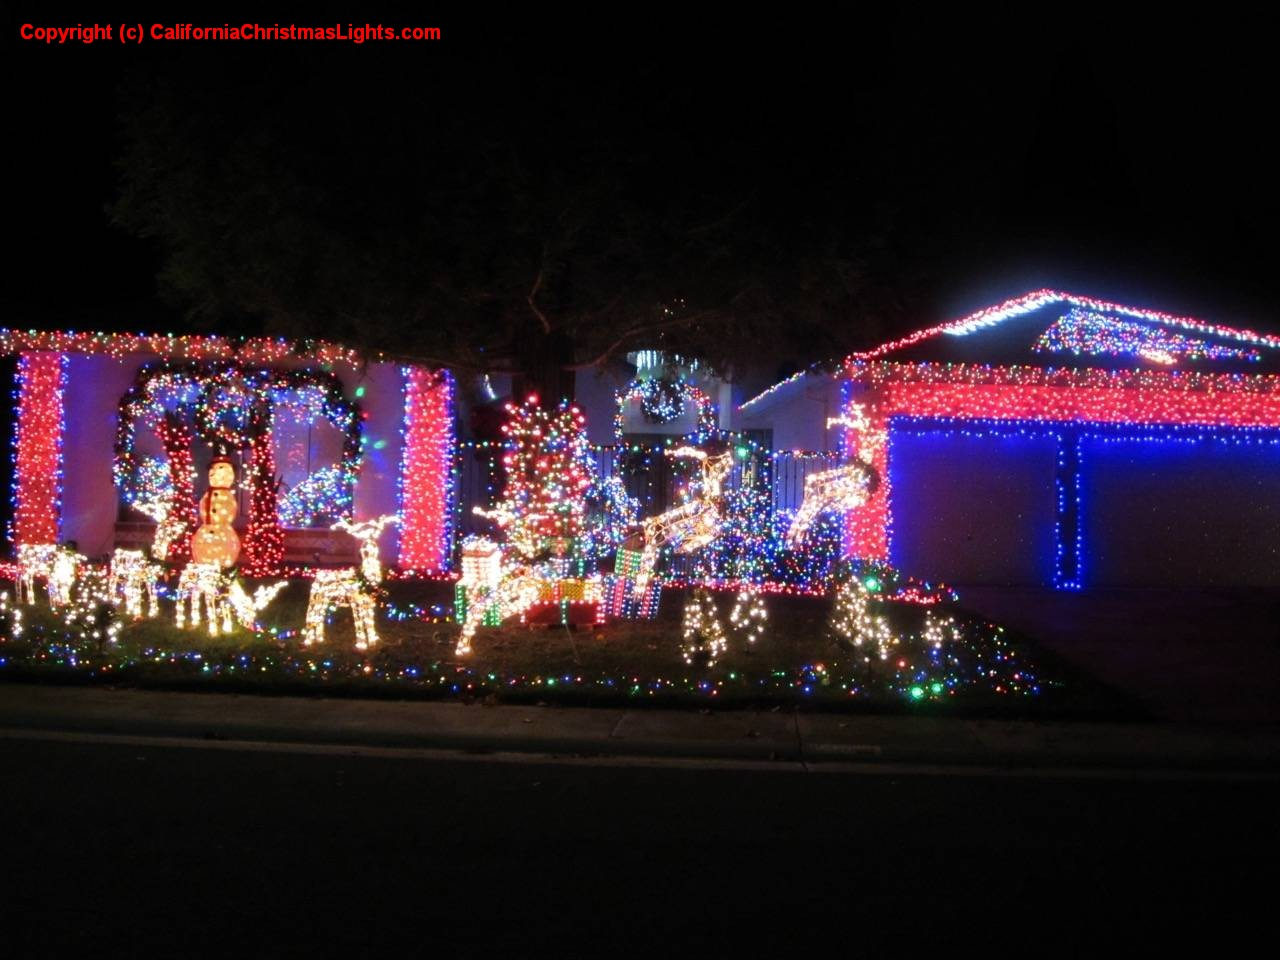 Best Christmas Lights In Sacramento 2020 Best Christmas Lights and Holiday Displays in elk grove